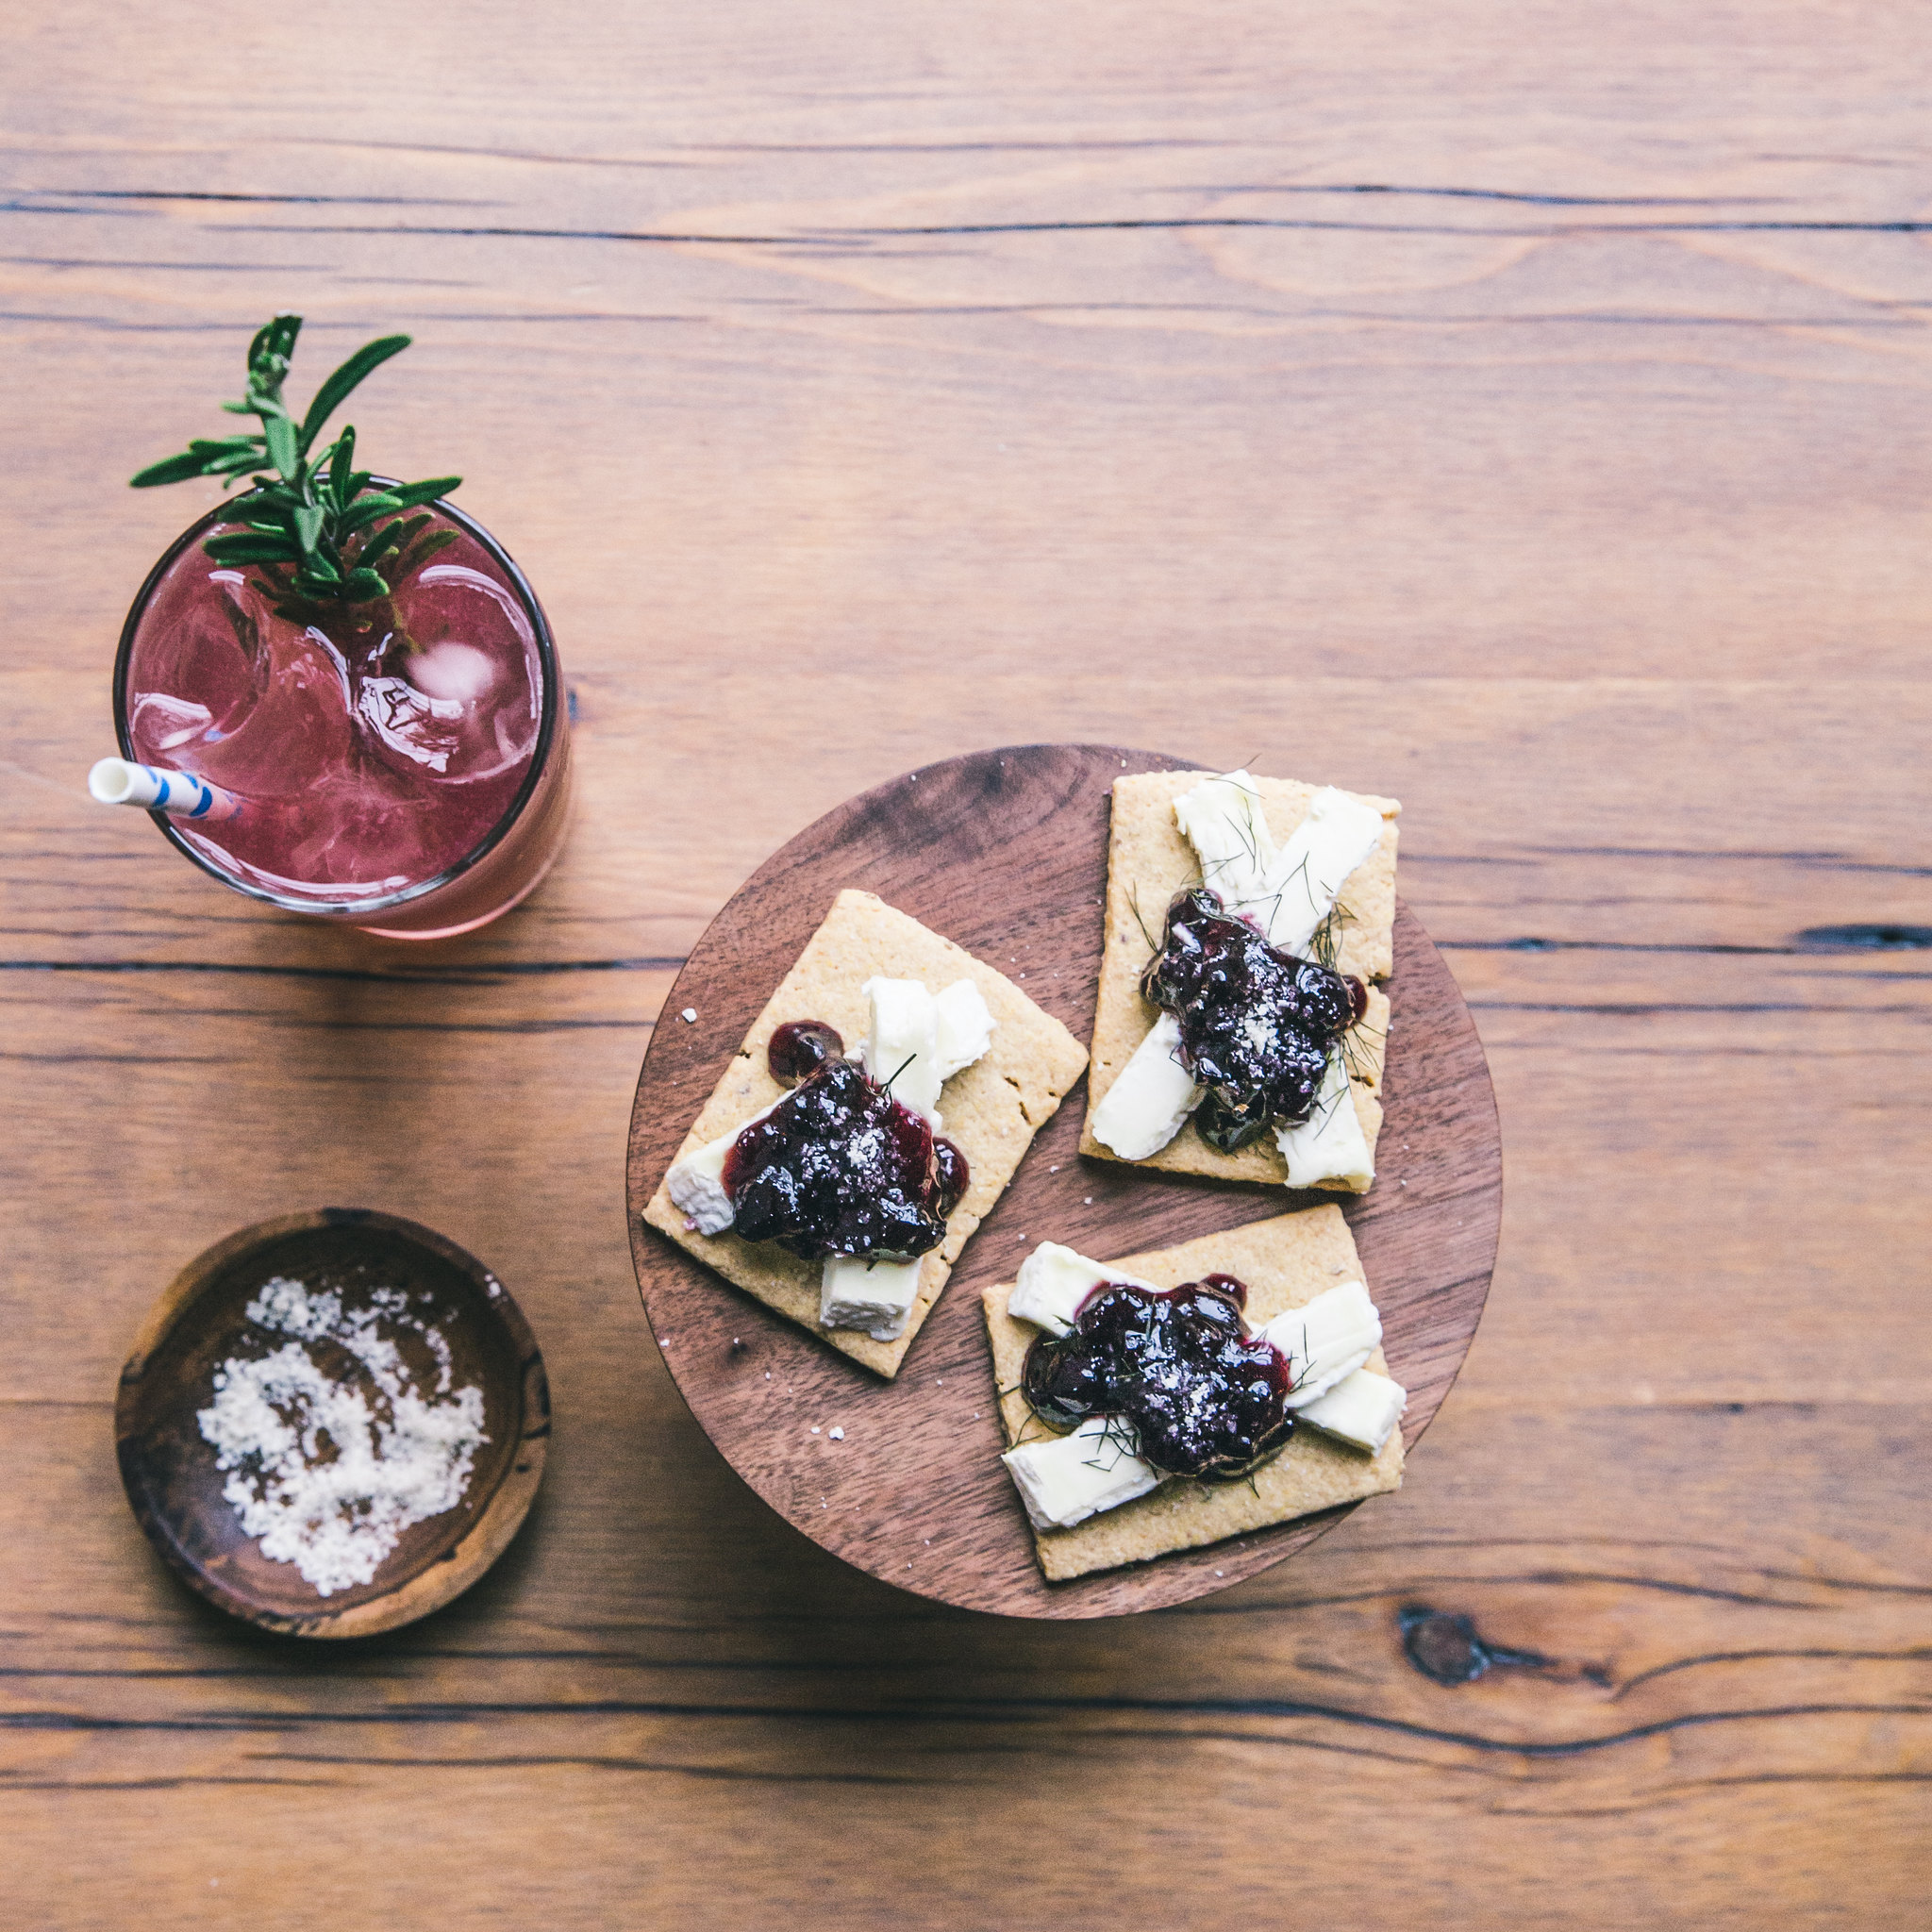 Bites & Booze: Cheese and cocktail parings with Vermont Creamery and Stonecutter Spirits